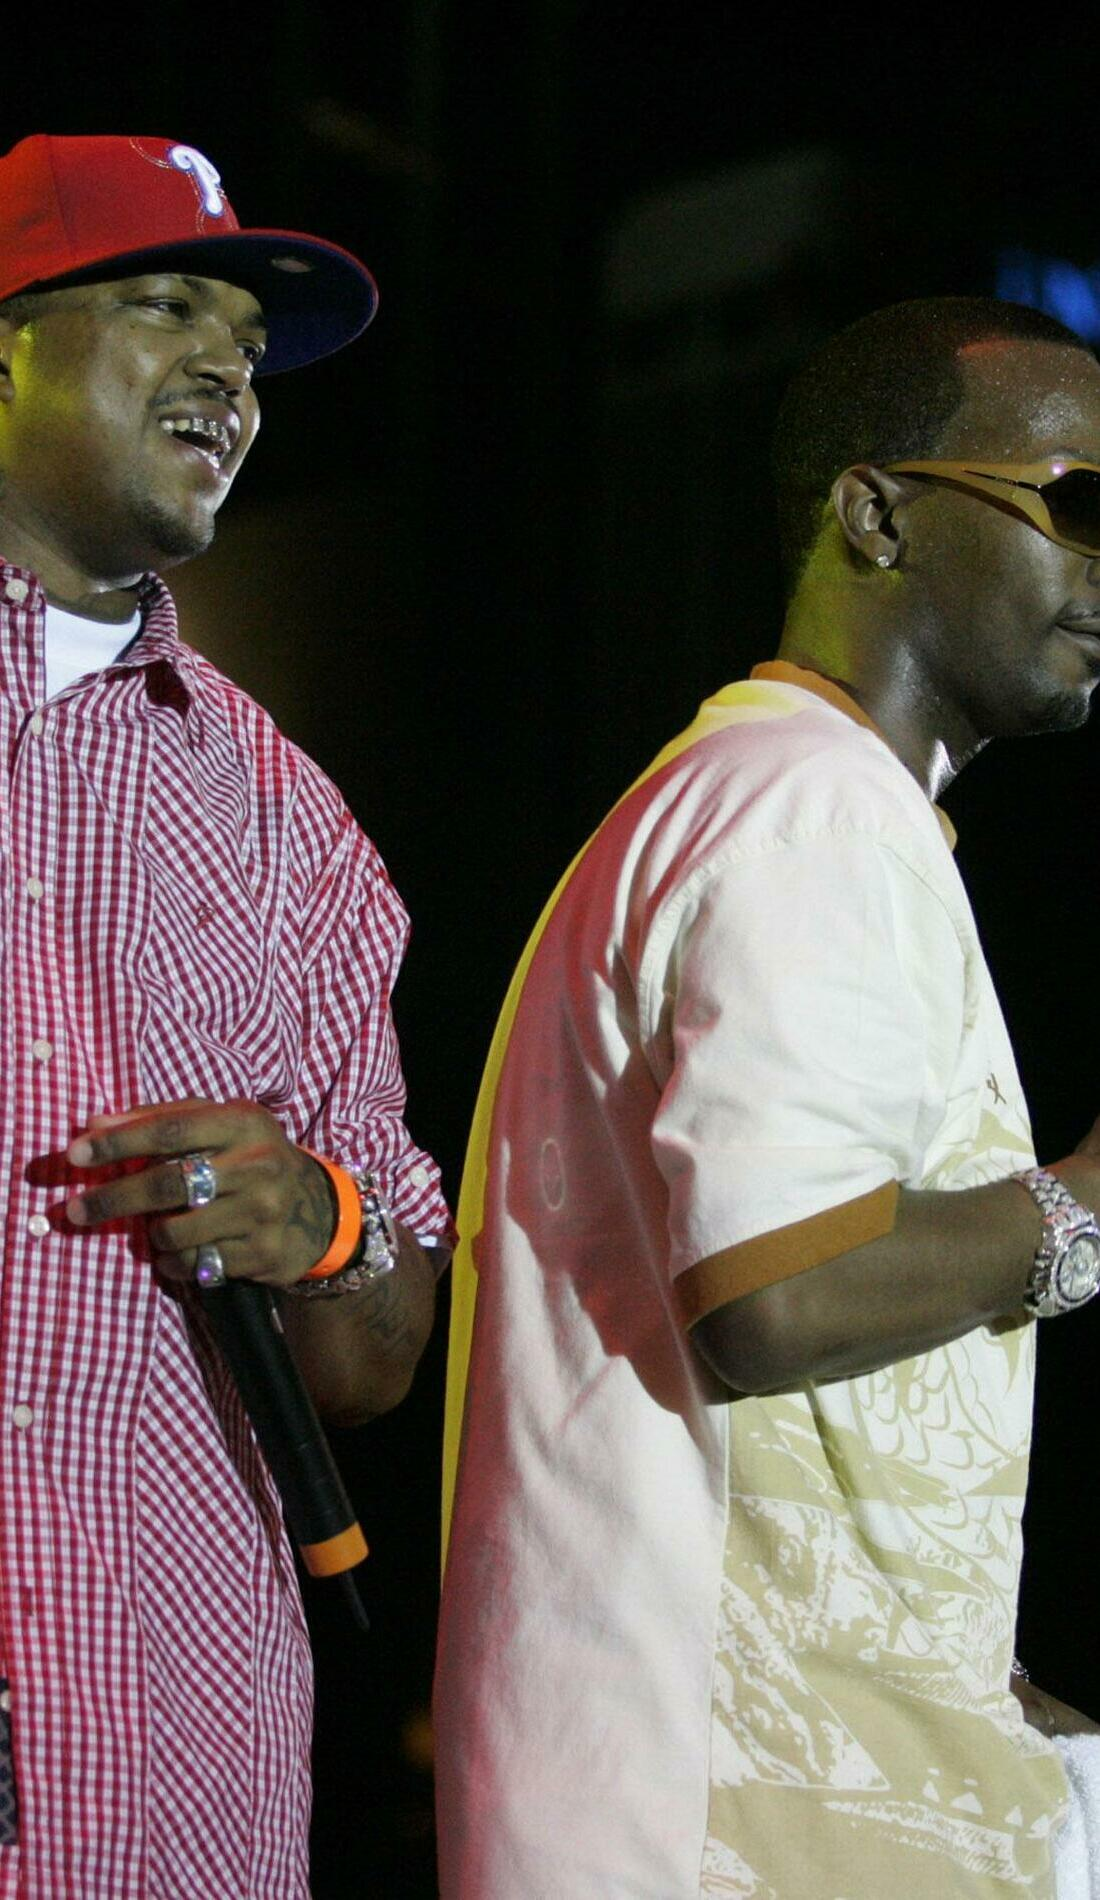 A Three 6 Mafia live event